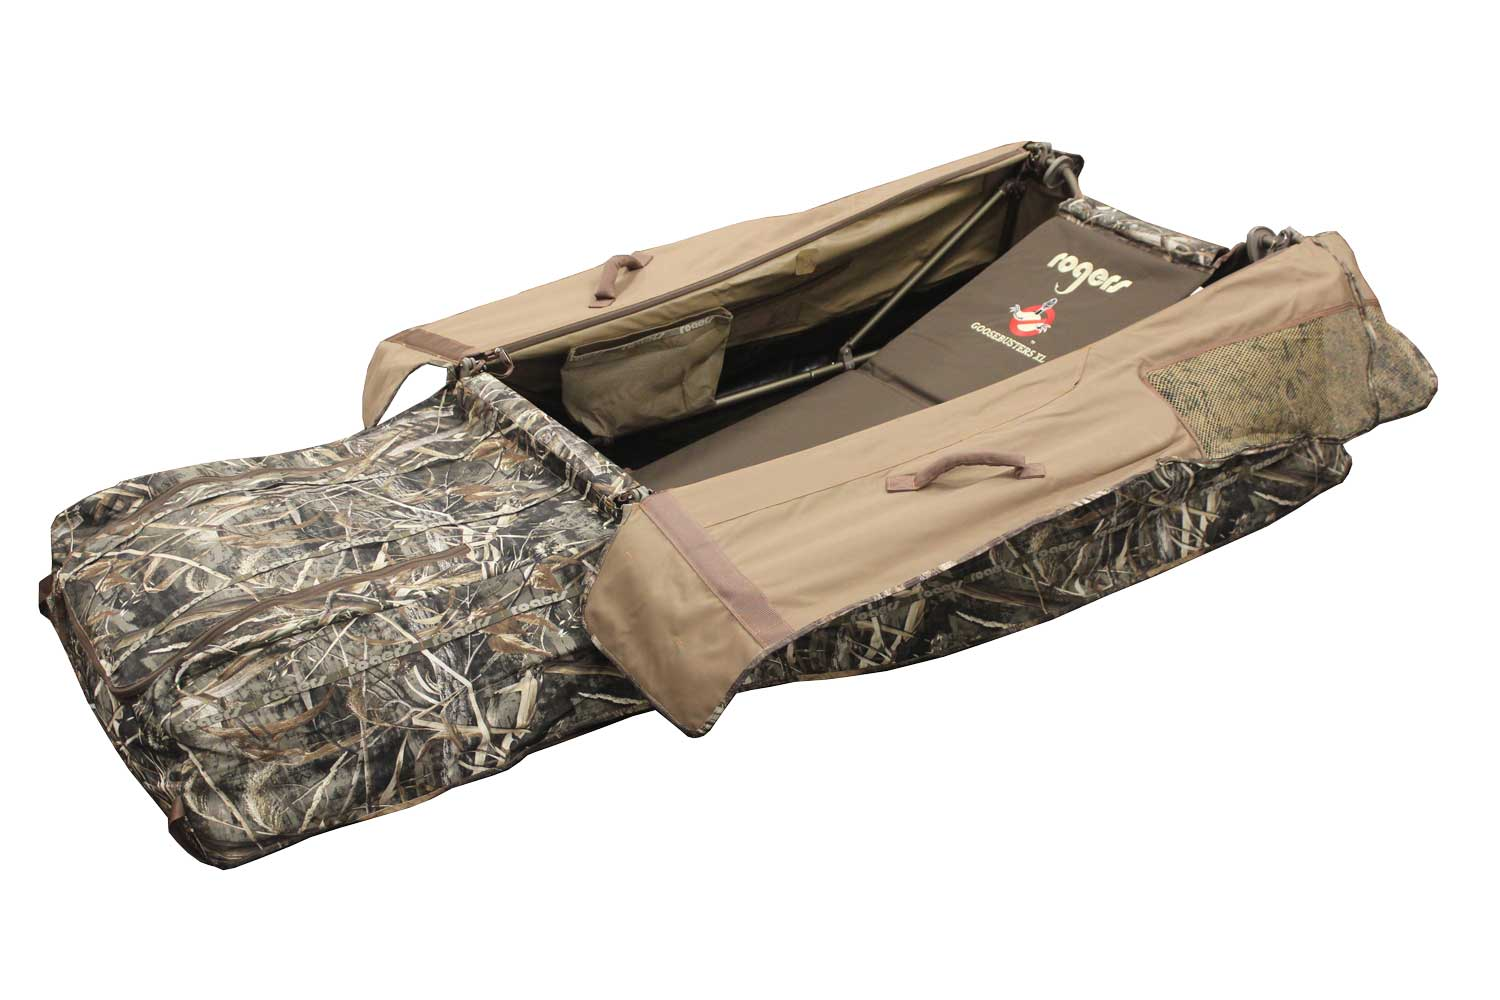 f09b6cc721abf Rogers Goosebuster XL Layout Blind in Realtree Max 5